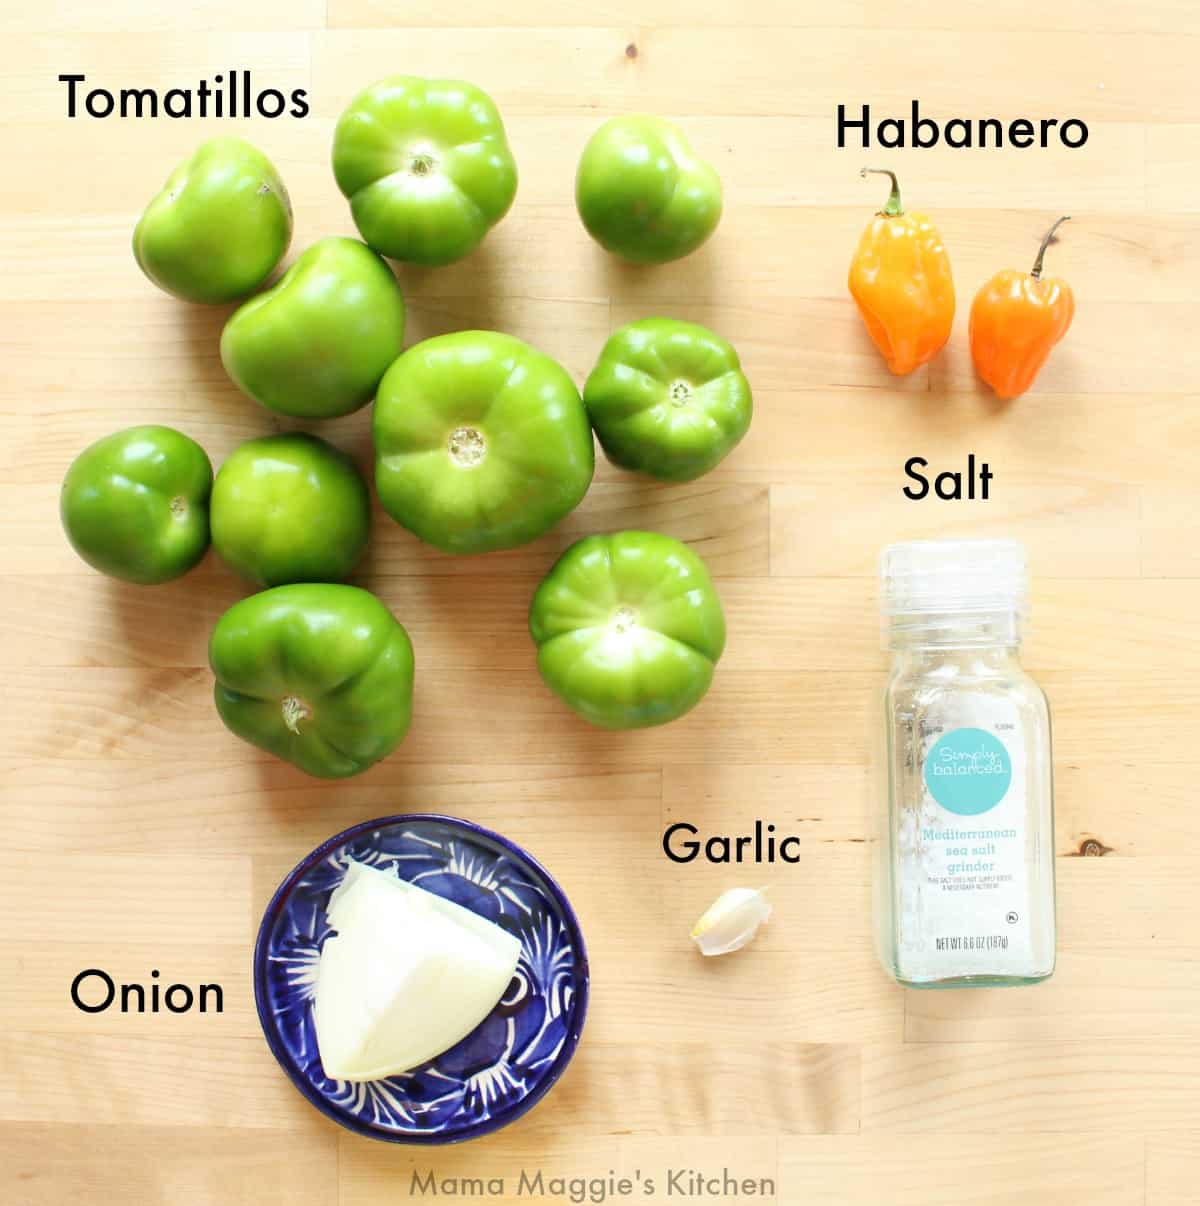 The ingredients necessary to make Tomatillo Habanero Salsa on a wooden table.